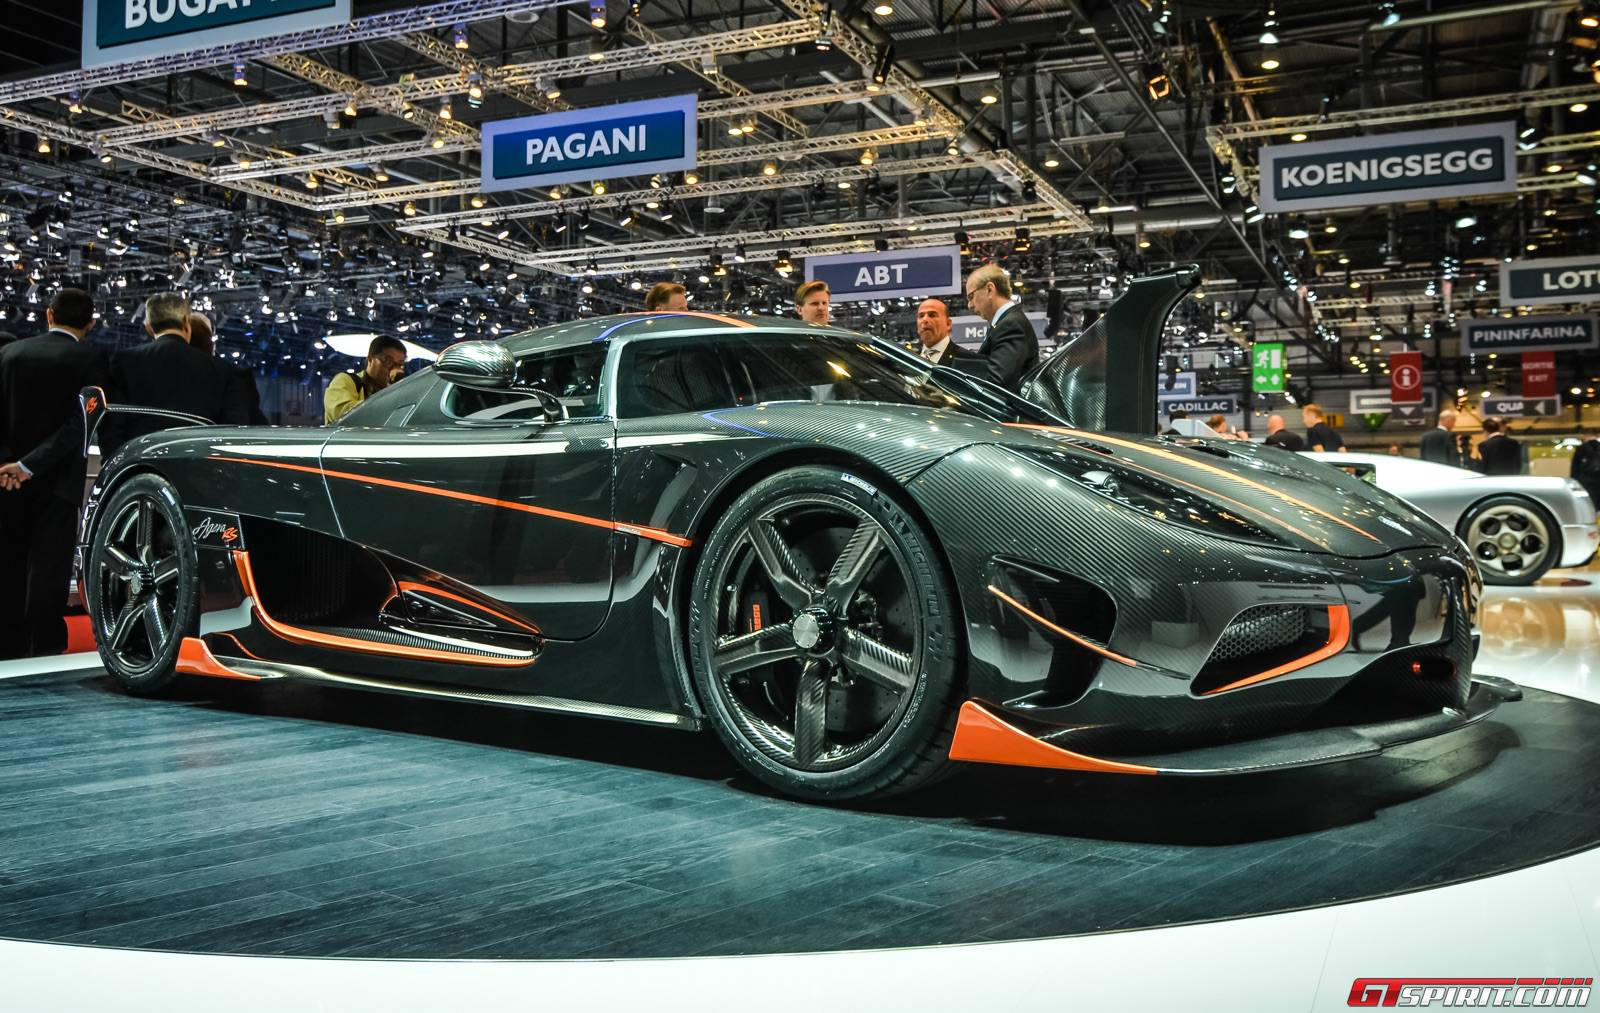 Hp Koenigsegg Regera Is A Gearbox Less Hybrid Hypercar in addition 36386 also 1097081 koenigsegg Agera Rs Races Into Geneva With 1160 Horsepower furthermore Koenigsegg Agera Rs Side Profile At The 2015 Geneva Motor Show in addition Karbon Fiber Cekiciligi. on 1160 hp for the koenigsegg agera rs at geneva